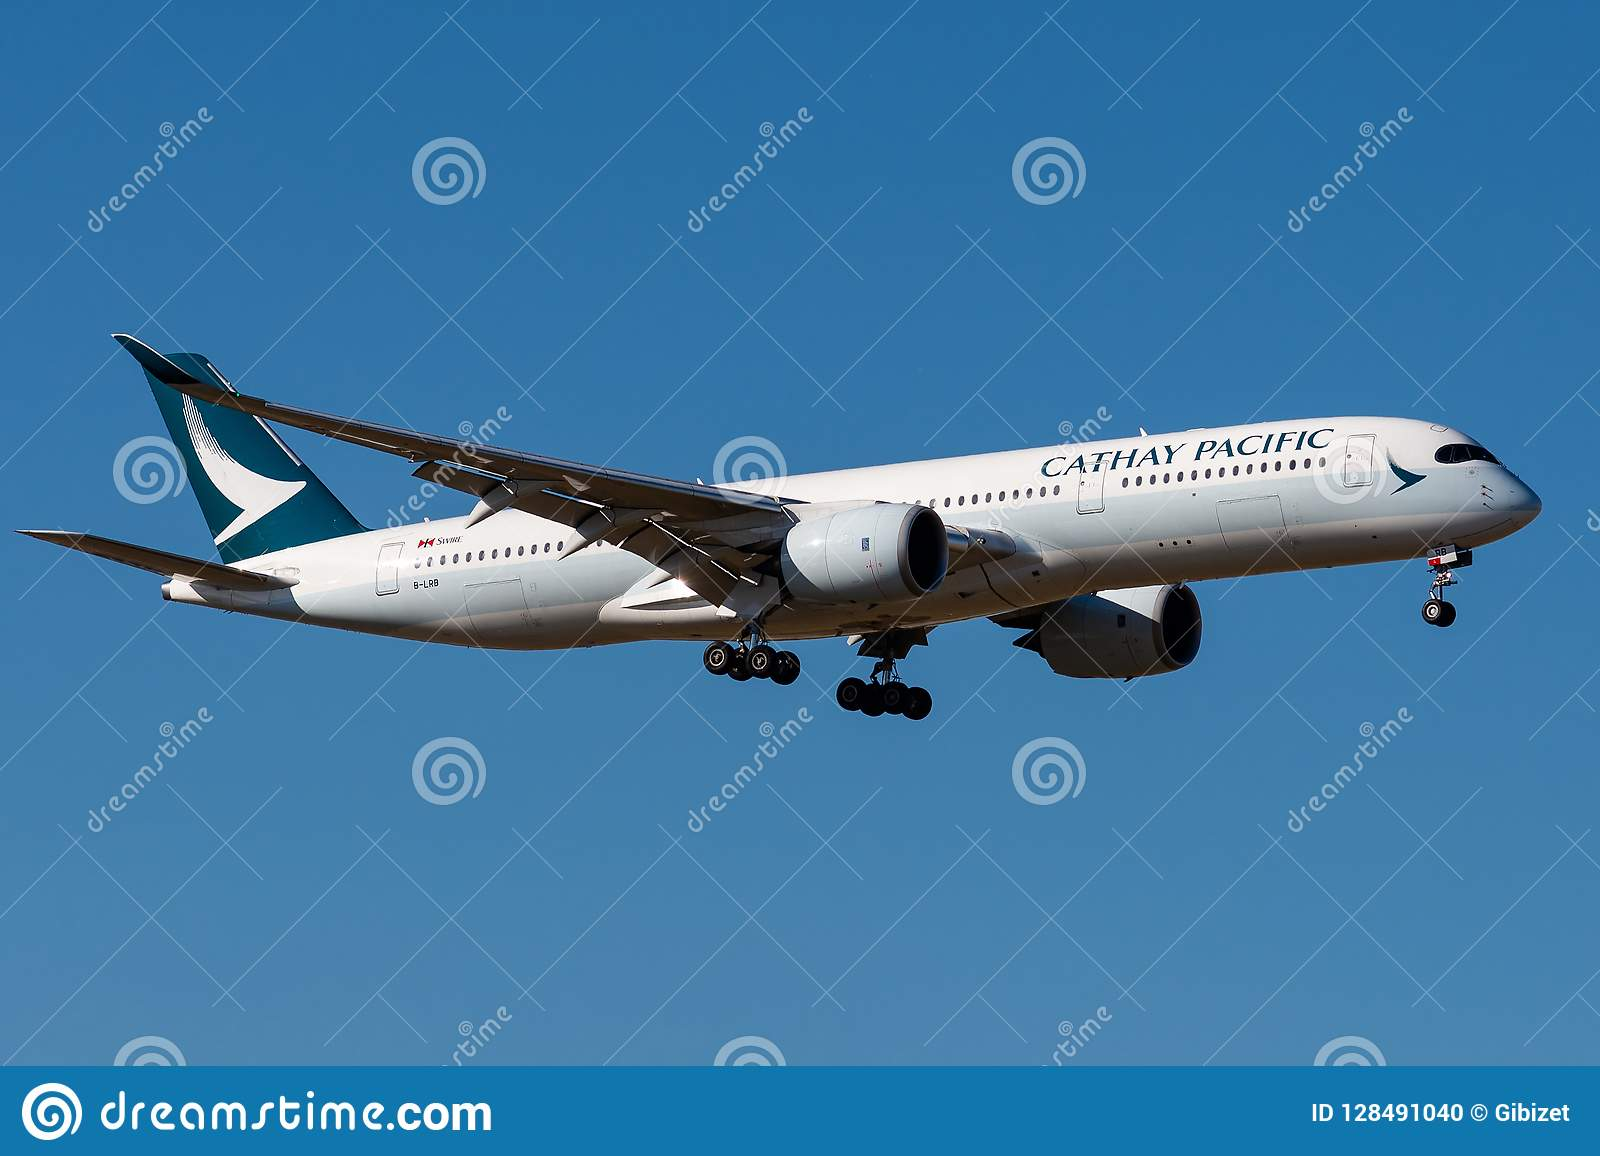 Airbus A350-941 - 032,operated by Cathay Pacific Airways landing